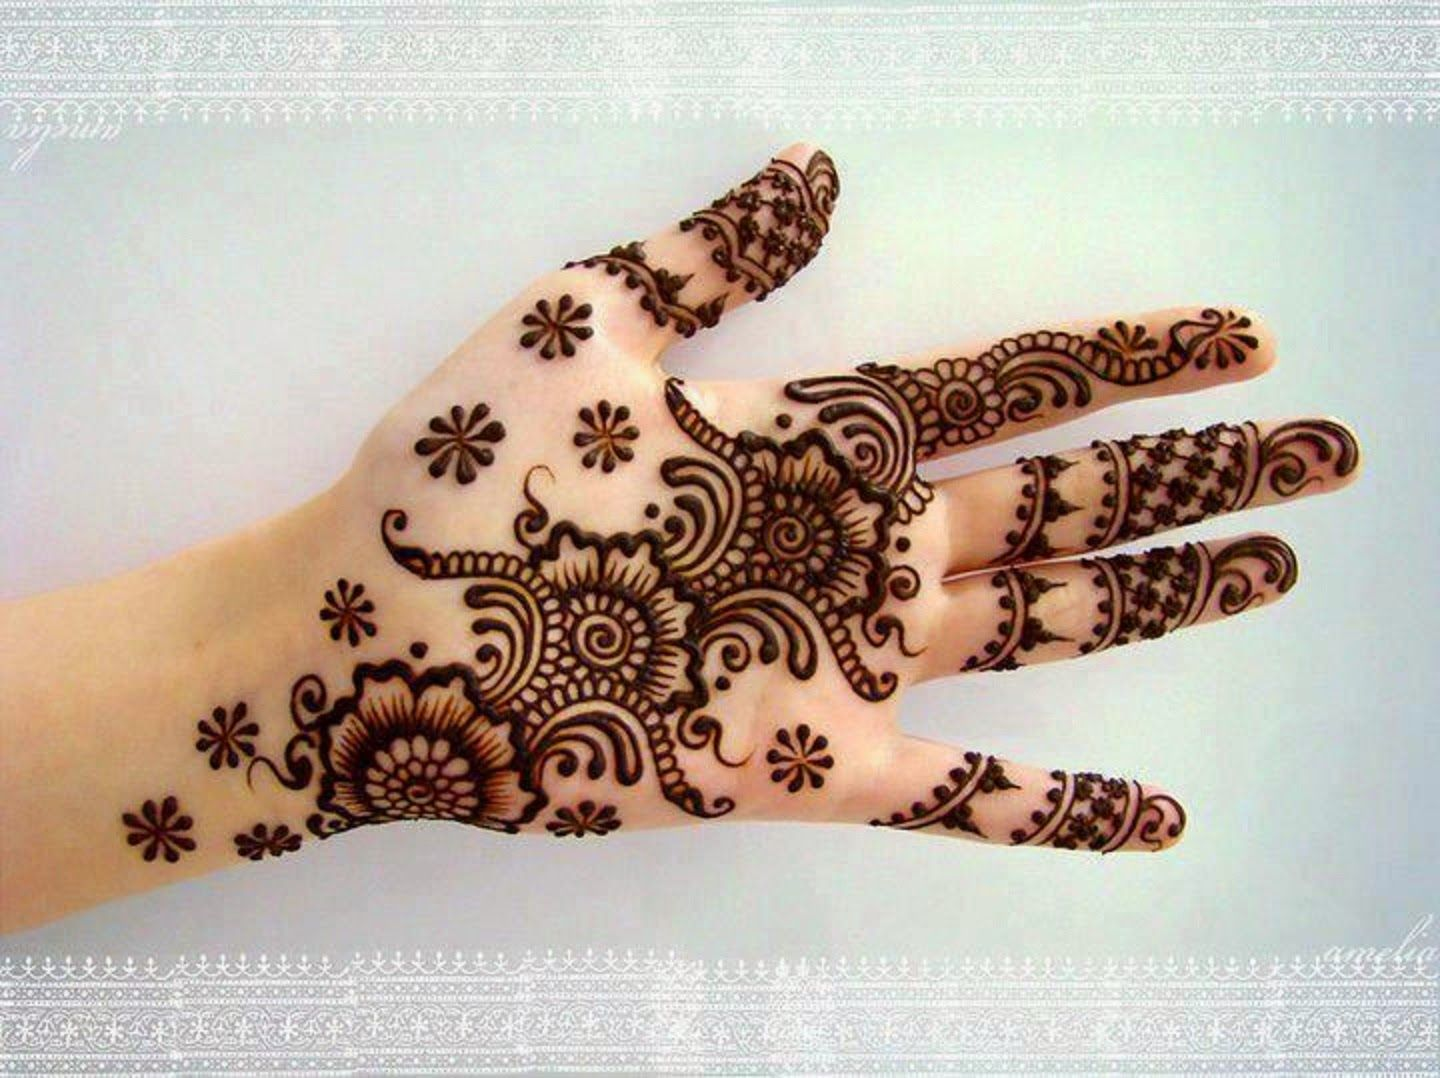 images-of-mehndi-design-wallpapers-1 | mehndi | pinterest